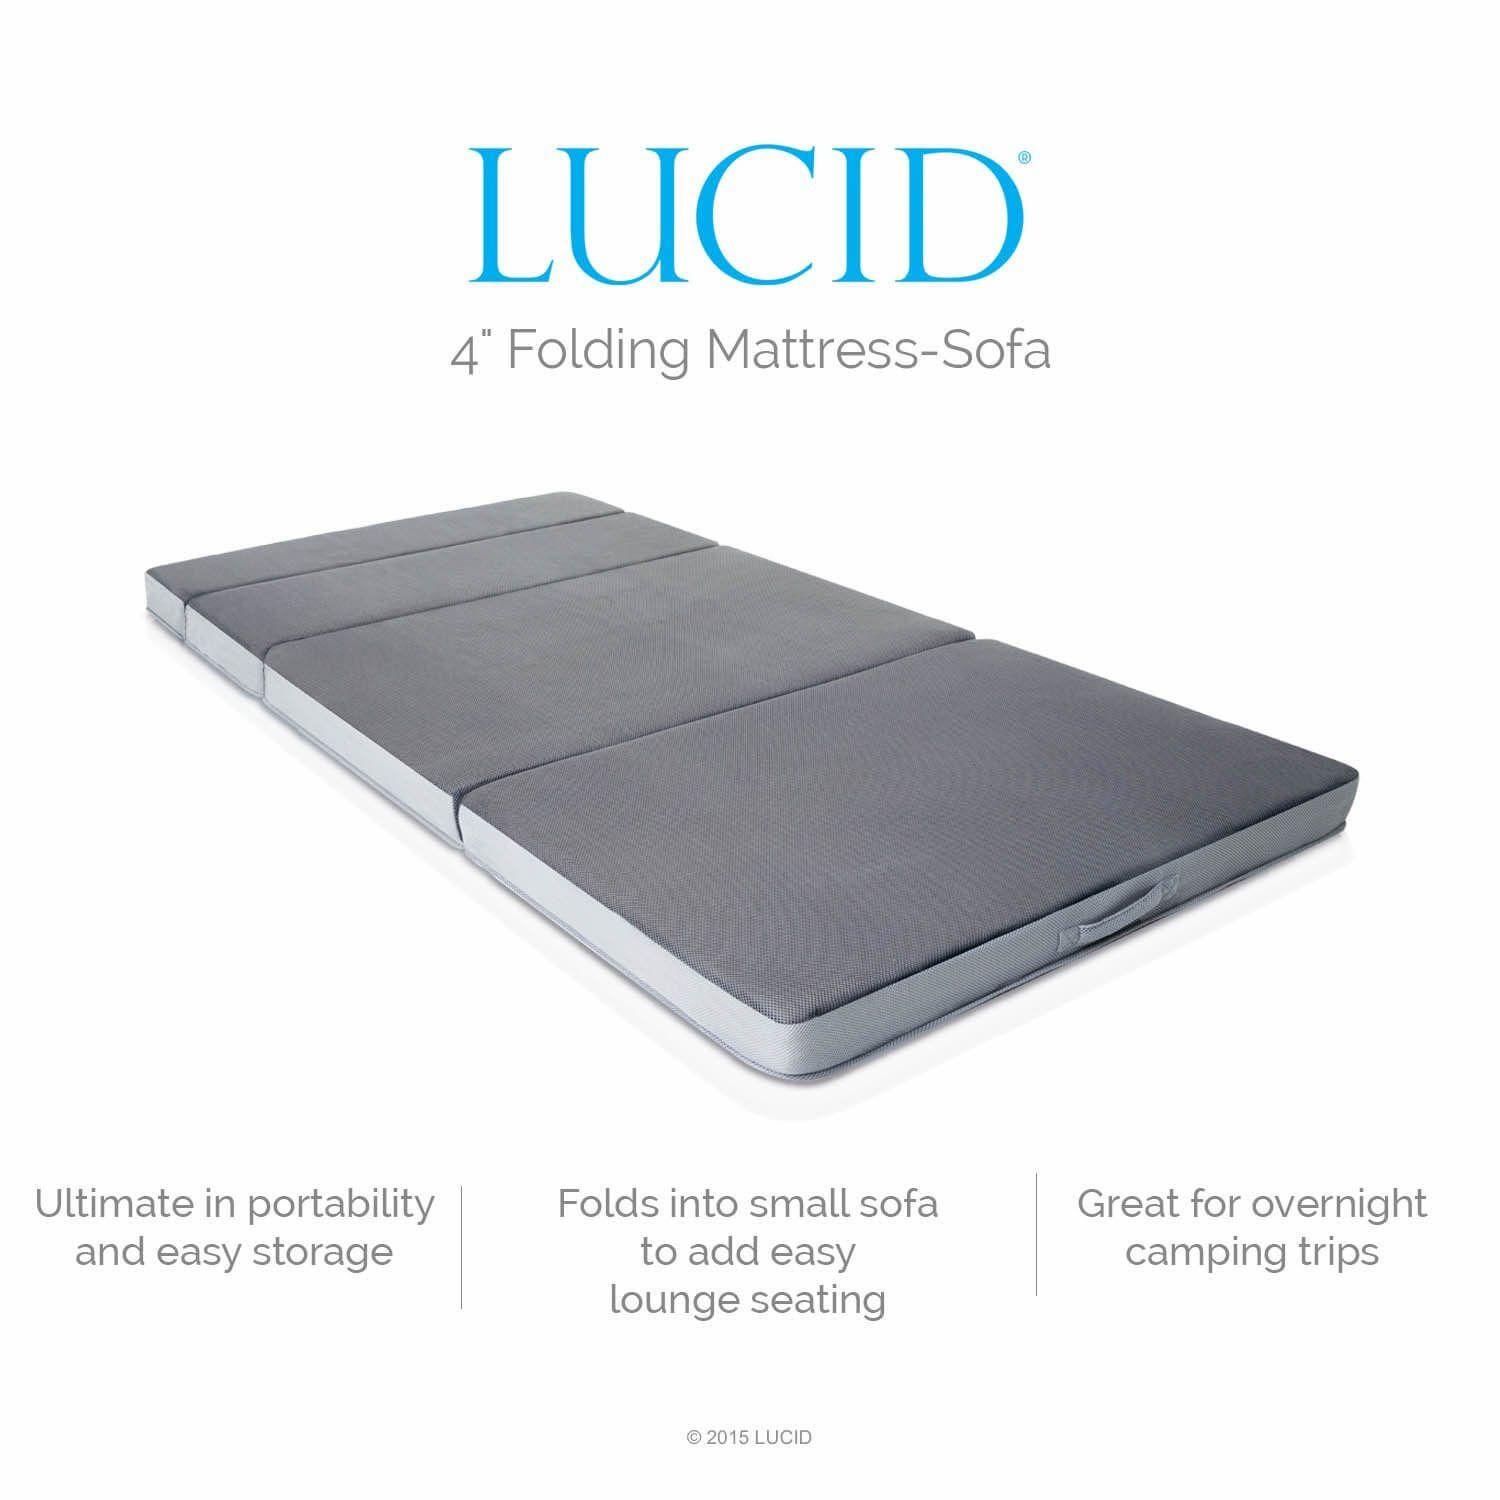 Best Foam Mattress Lucid 4 Inch Folding Folding Mattress Mattress Sofa Foldable Mattress